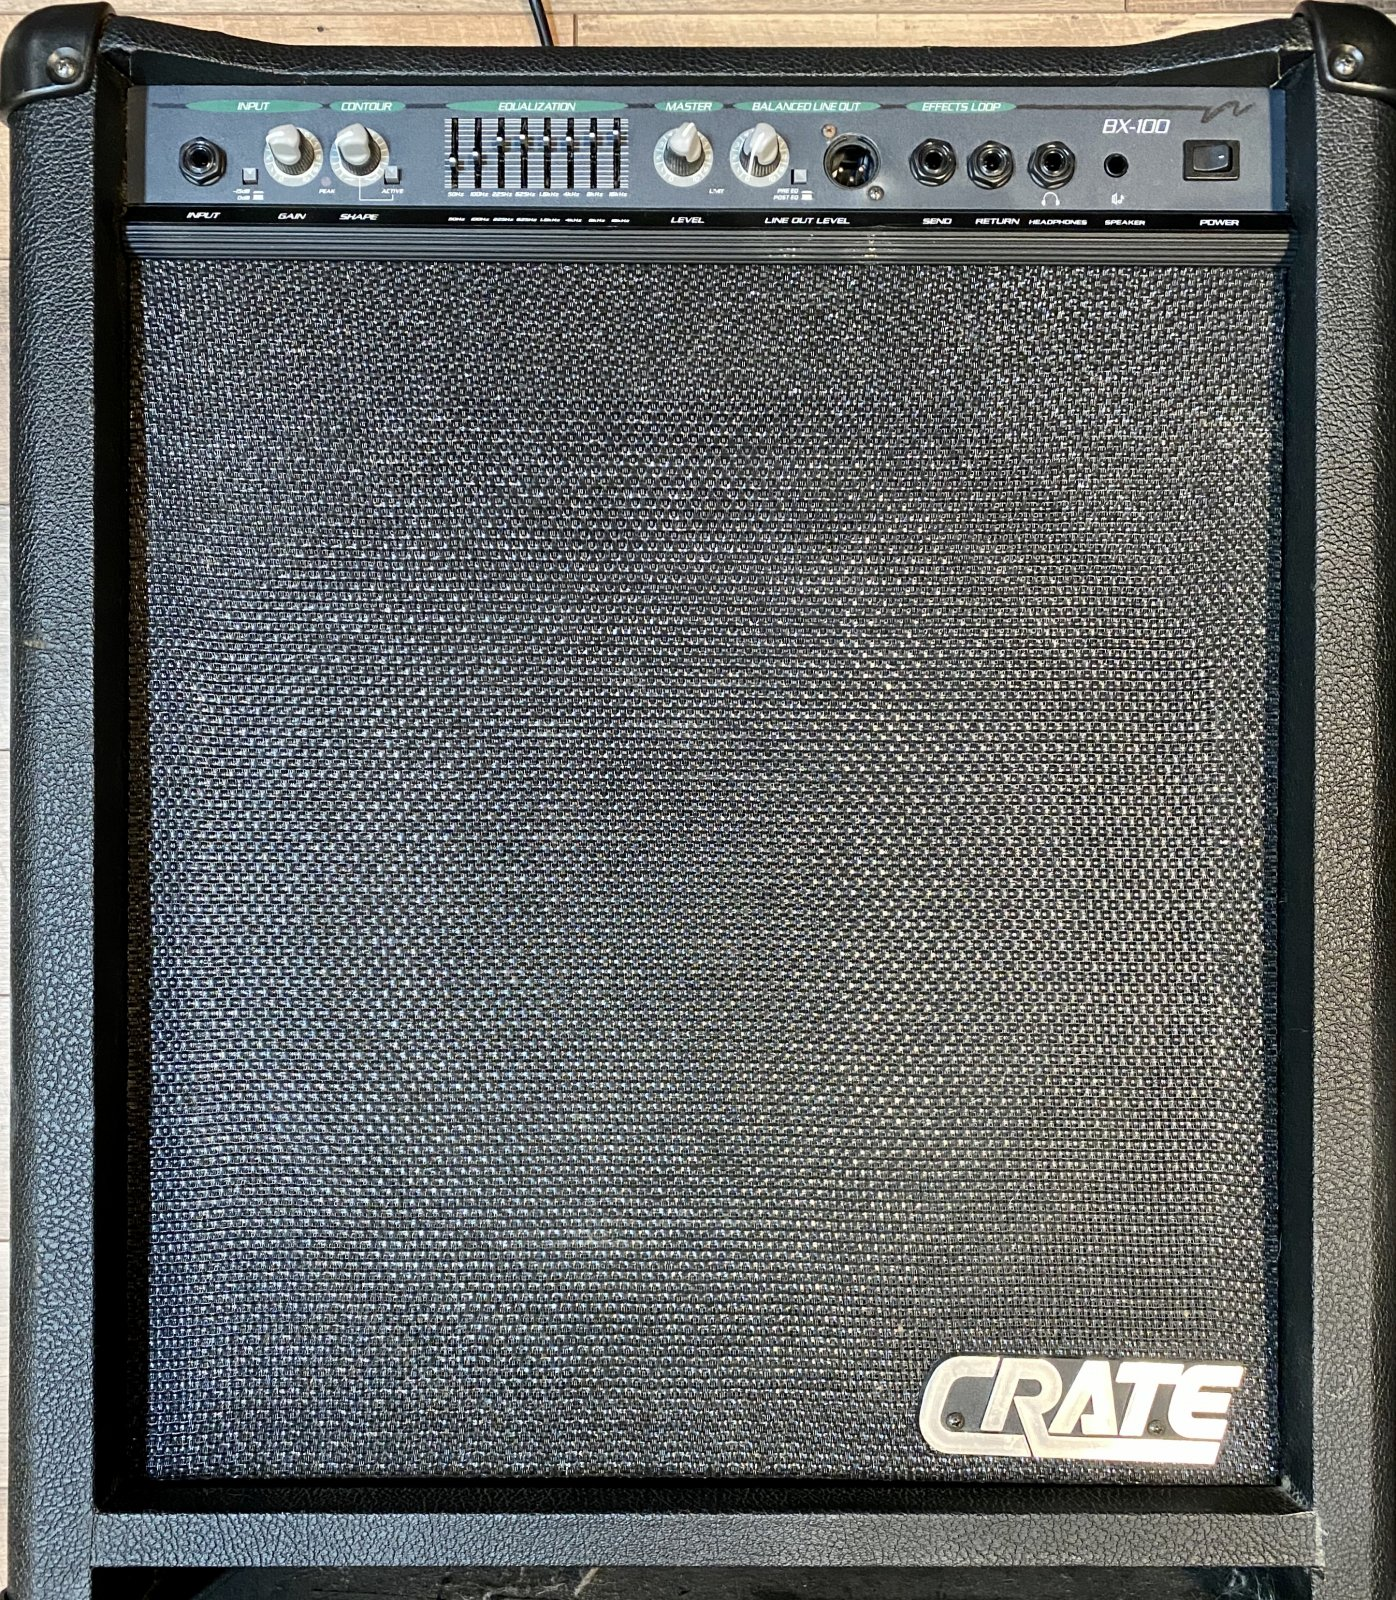 USED - Crate BX-100 Bass Amp